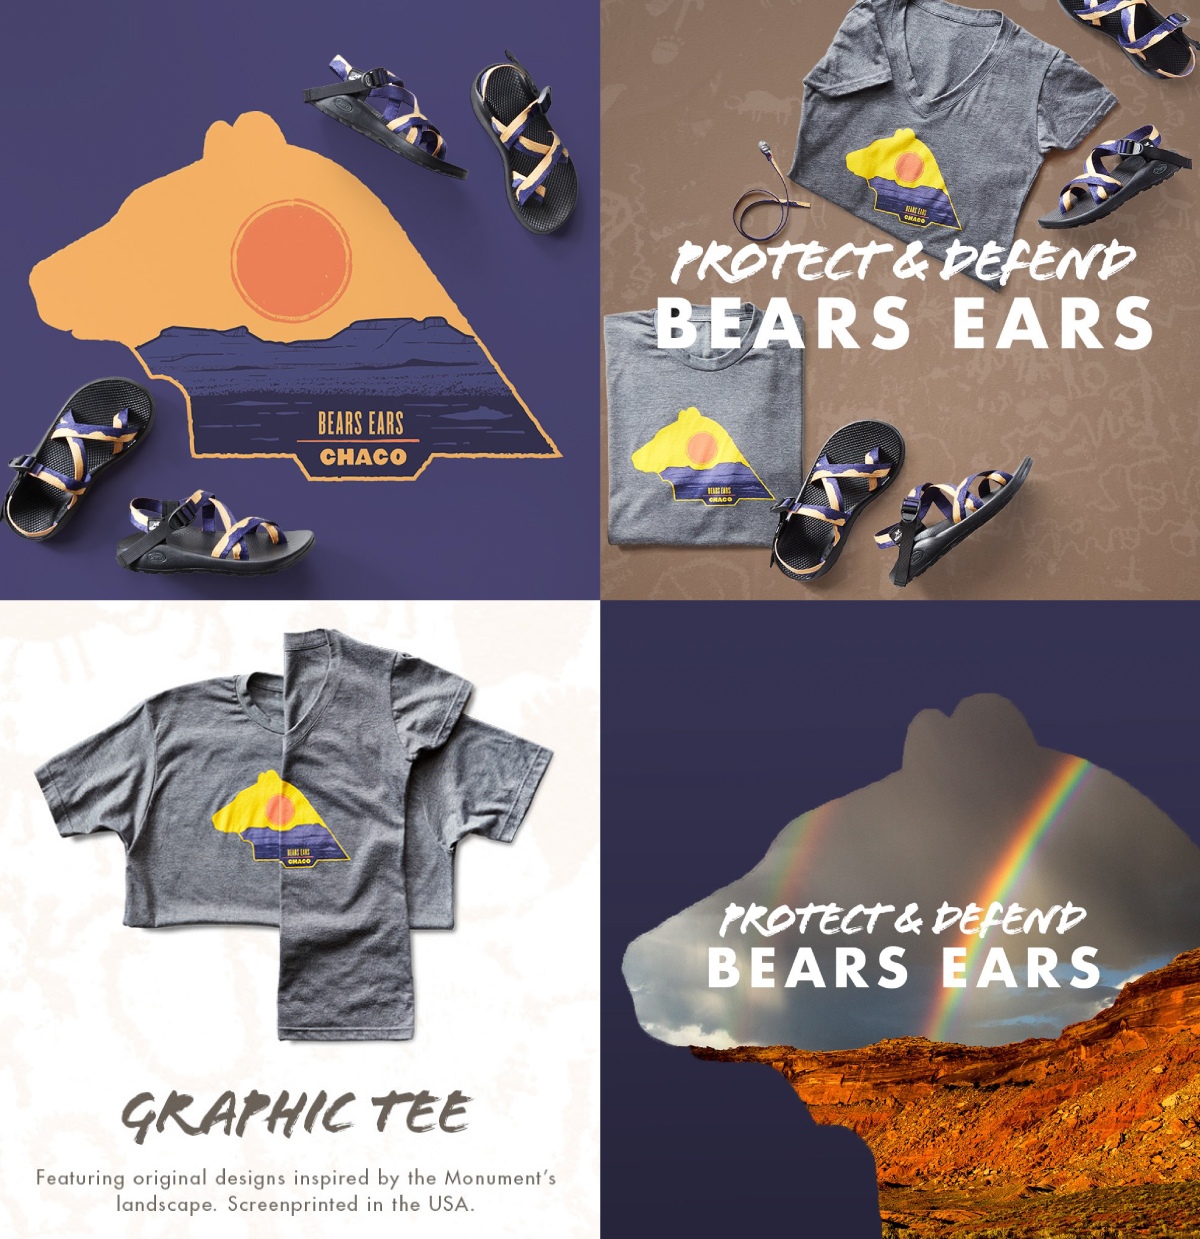 74ca6826f164 ... t-shirt and sandal with 100% of the proceeds going to The Defense of Bears  Ears. I worked with them to create their iconic and limited edition graphic.